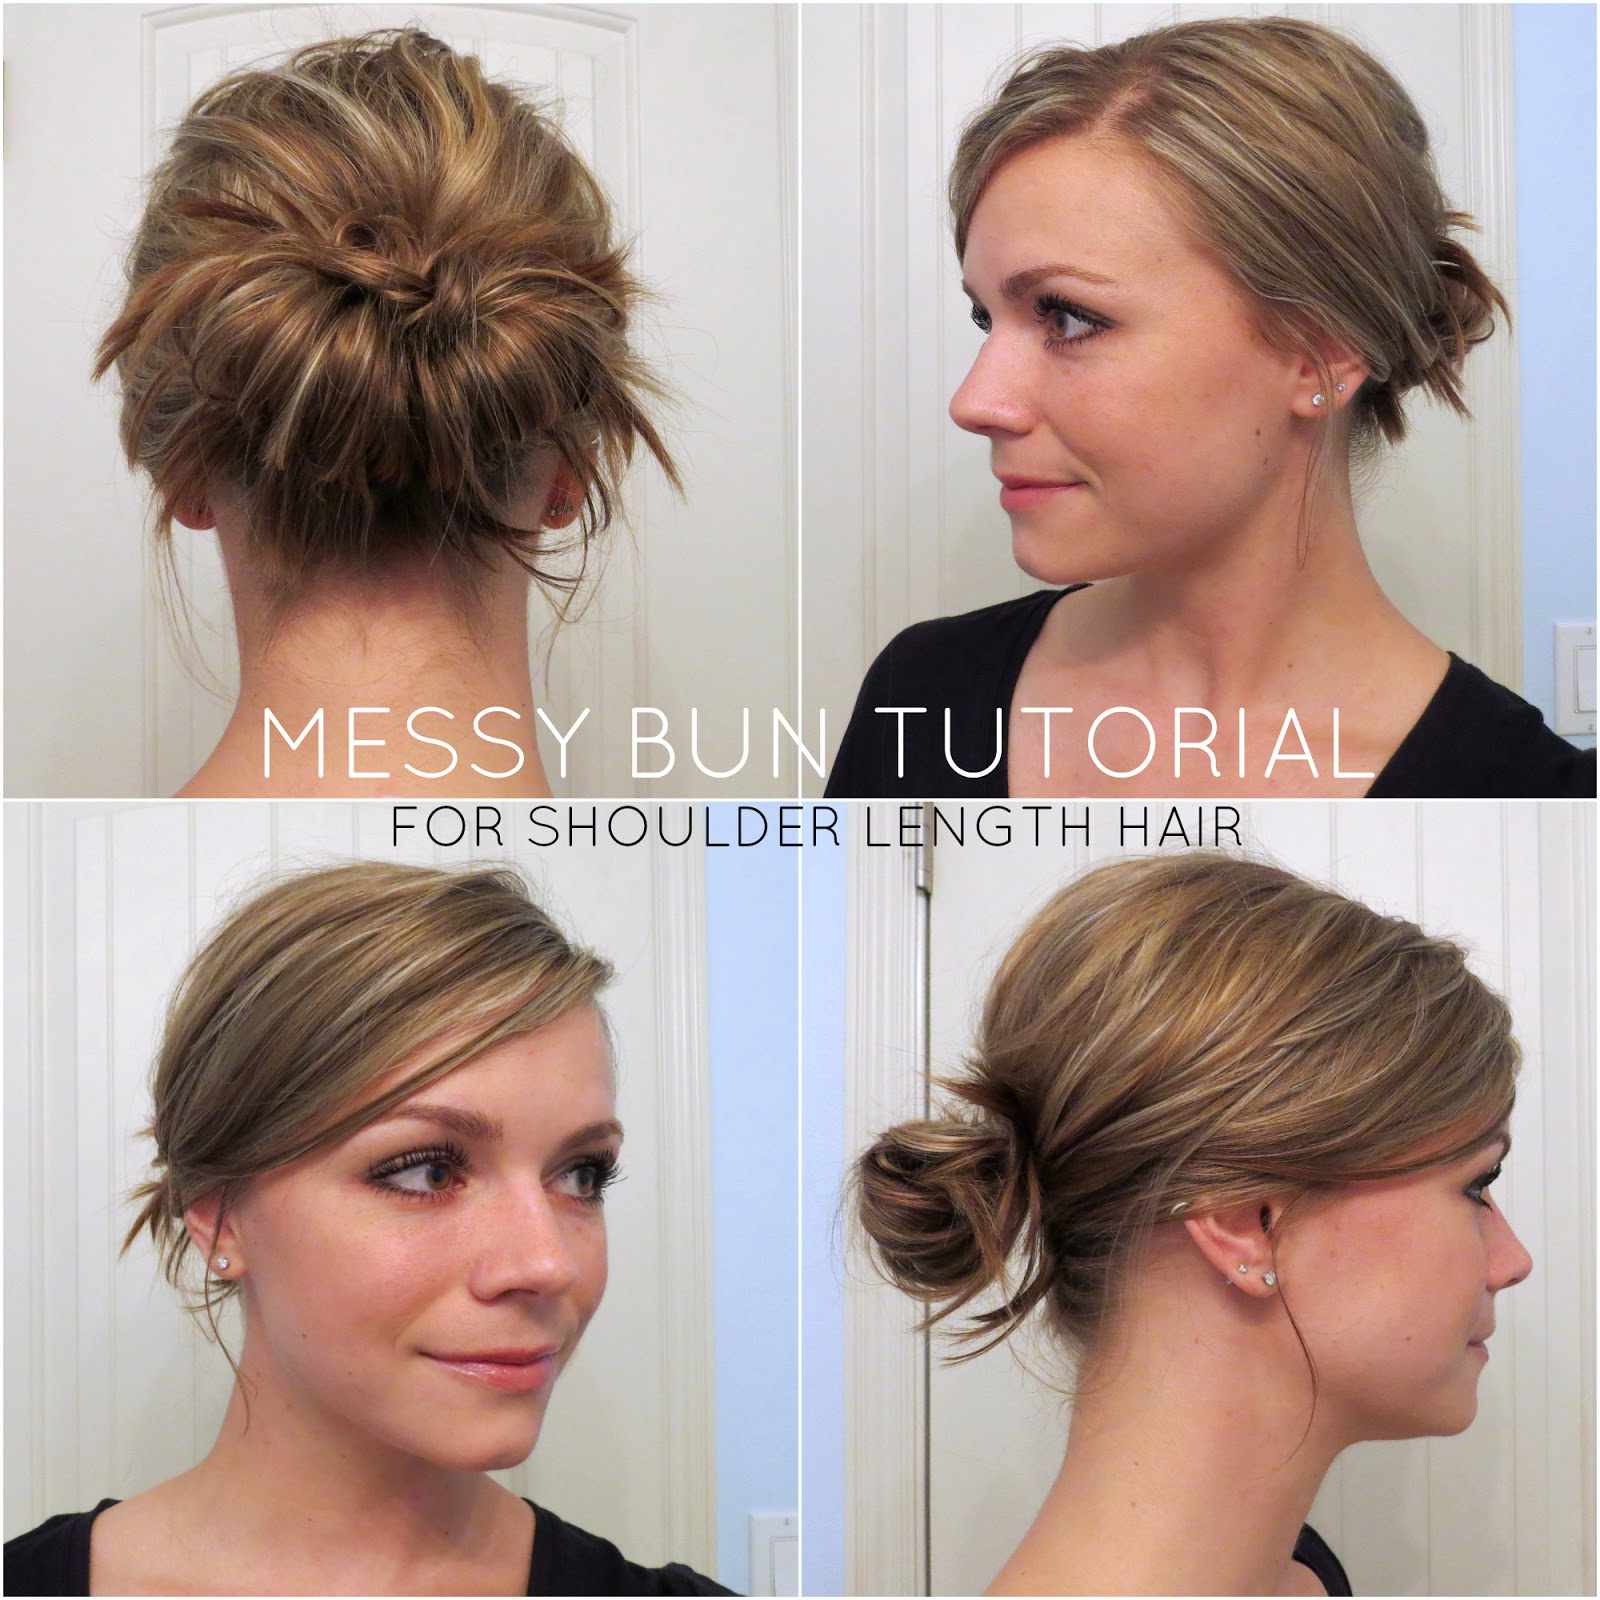 Bye Bye Beehive │ A Hairstyle Blog Messy Bun for Shoulder Length Hair